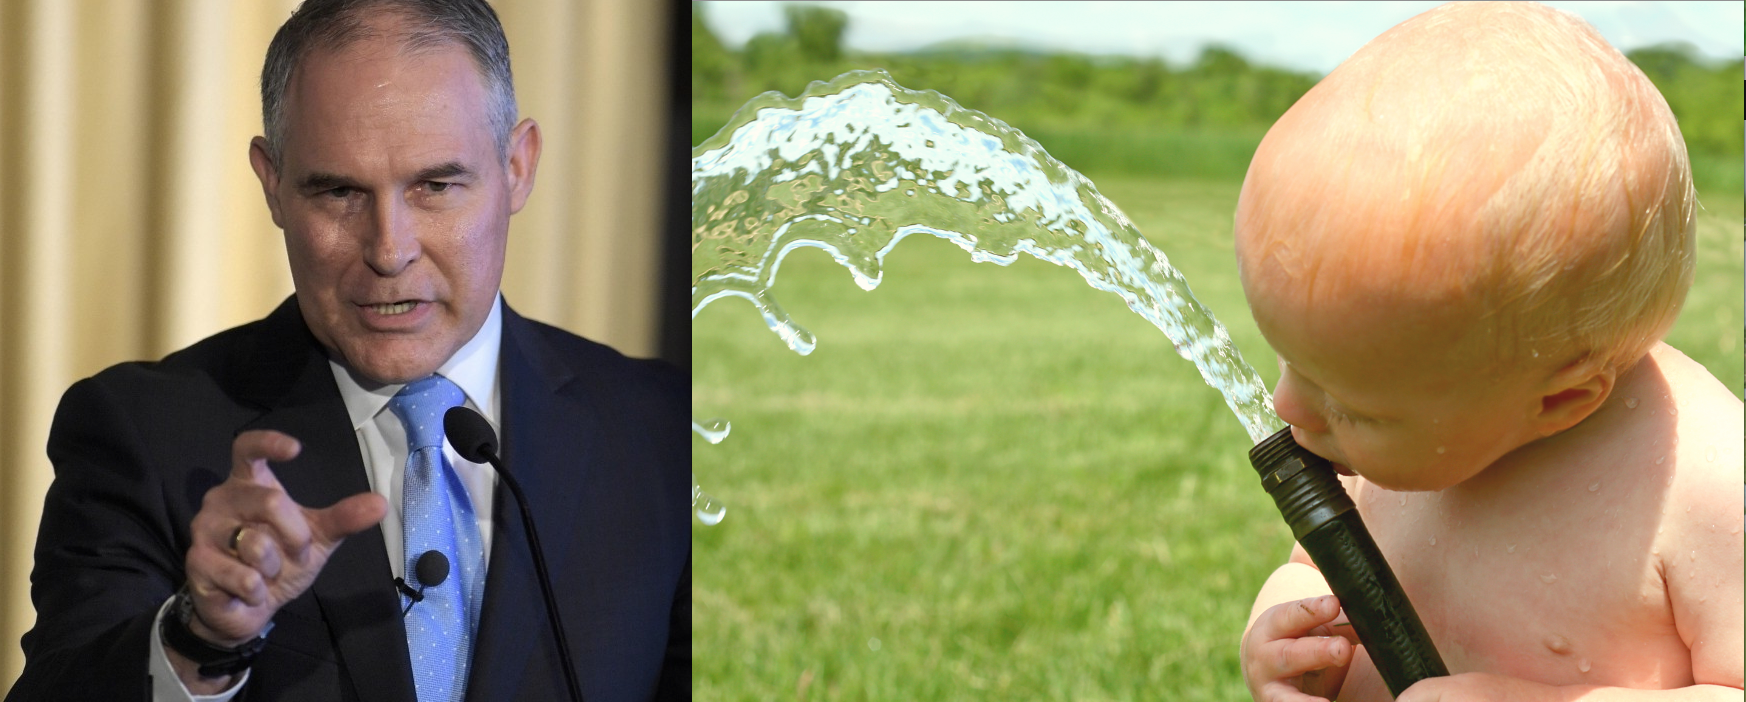 Scott Pruitt Proposes Gutting Clean Water Act, Threatening Drinking Water of 117m Americans